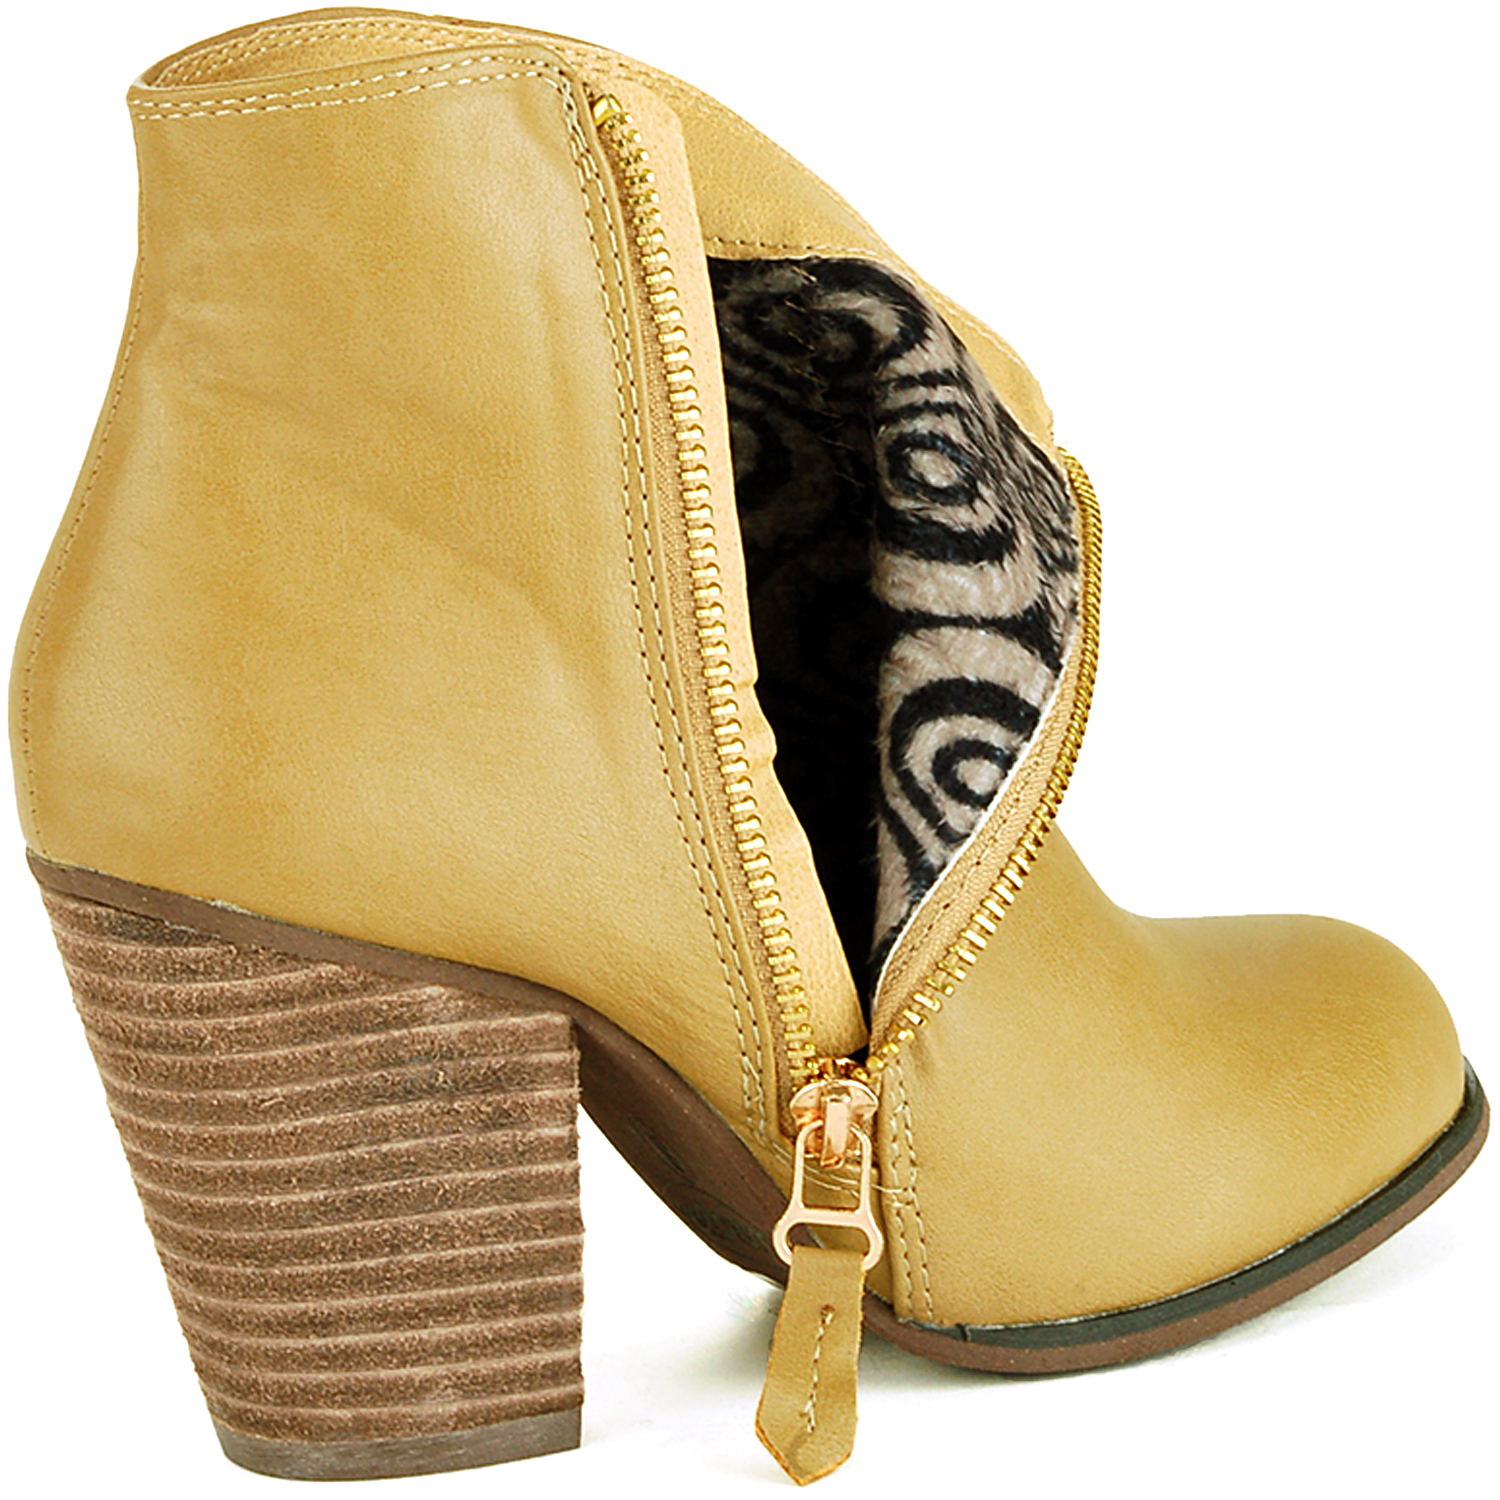 Hundreds of colors and a variety of styles of women's boots at Shiekh Shoes. Shop our complete selection of women's boots from brands like Michael Antonio, Bearpaw, Wild Diva, Breckelle's, Shiekh and more. High heel boots, rain boots, knee high boots and much more at Shiekh Shoes. Be sure to check out our wide selection of fur lined jomp16.tk prices of sherling boots from Bearpaw available .